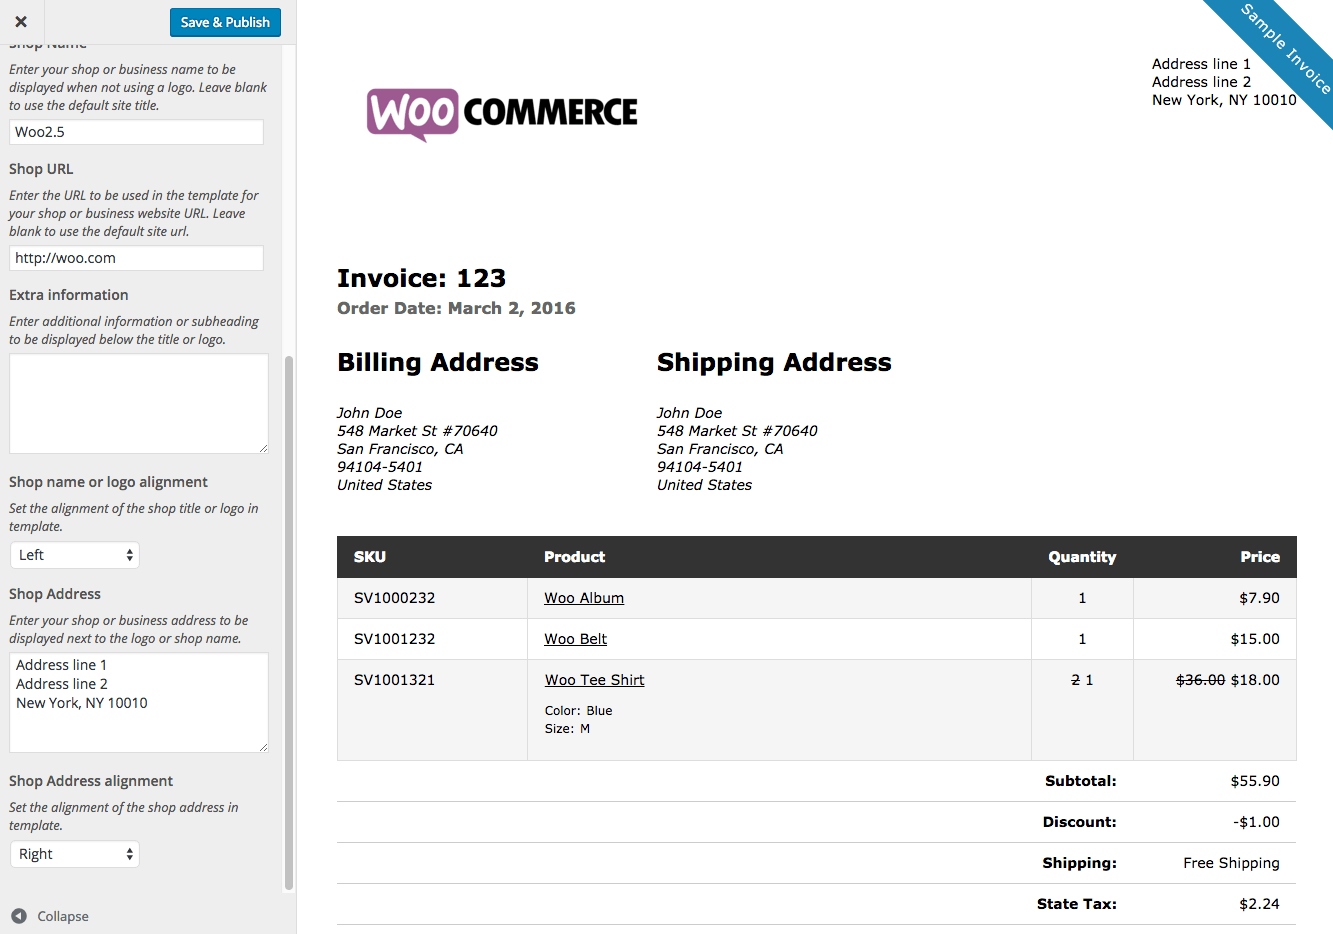 Maidofhonortoastus  Splendid Woocommerce Print Invoices Amp Packing Lists  Woocommerce Docs With Handsome Woocommerce Print Invoices  Packing Lists Customizer With Amusing Trust Receipt Form Also E Payment Receipt In Addition Template For Payment Receipt And Cash Receipt Book Format As Well As Receipt Scanner App Reviews Additionally Car Rental Receipt Template Word From Docswoocommercecom With Maidofhonortoastus  Handsome Woocommerce Print Invoices Amp Packing Lists  Woocommerce Docs With Amusing Woocommerce Print Invoices  Packing Lists Customizer And Splendid Trust Receipt Form Also E Payment Receipt In Addition Template For Payment Receipt From Docswoocommercecom